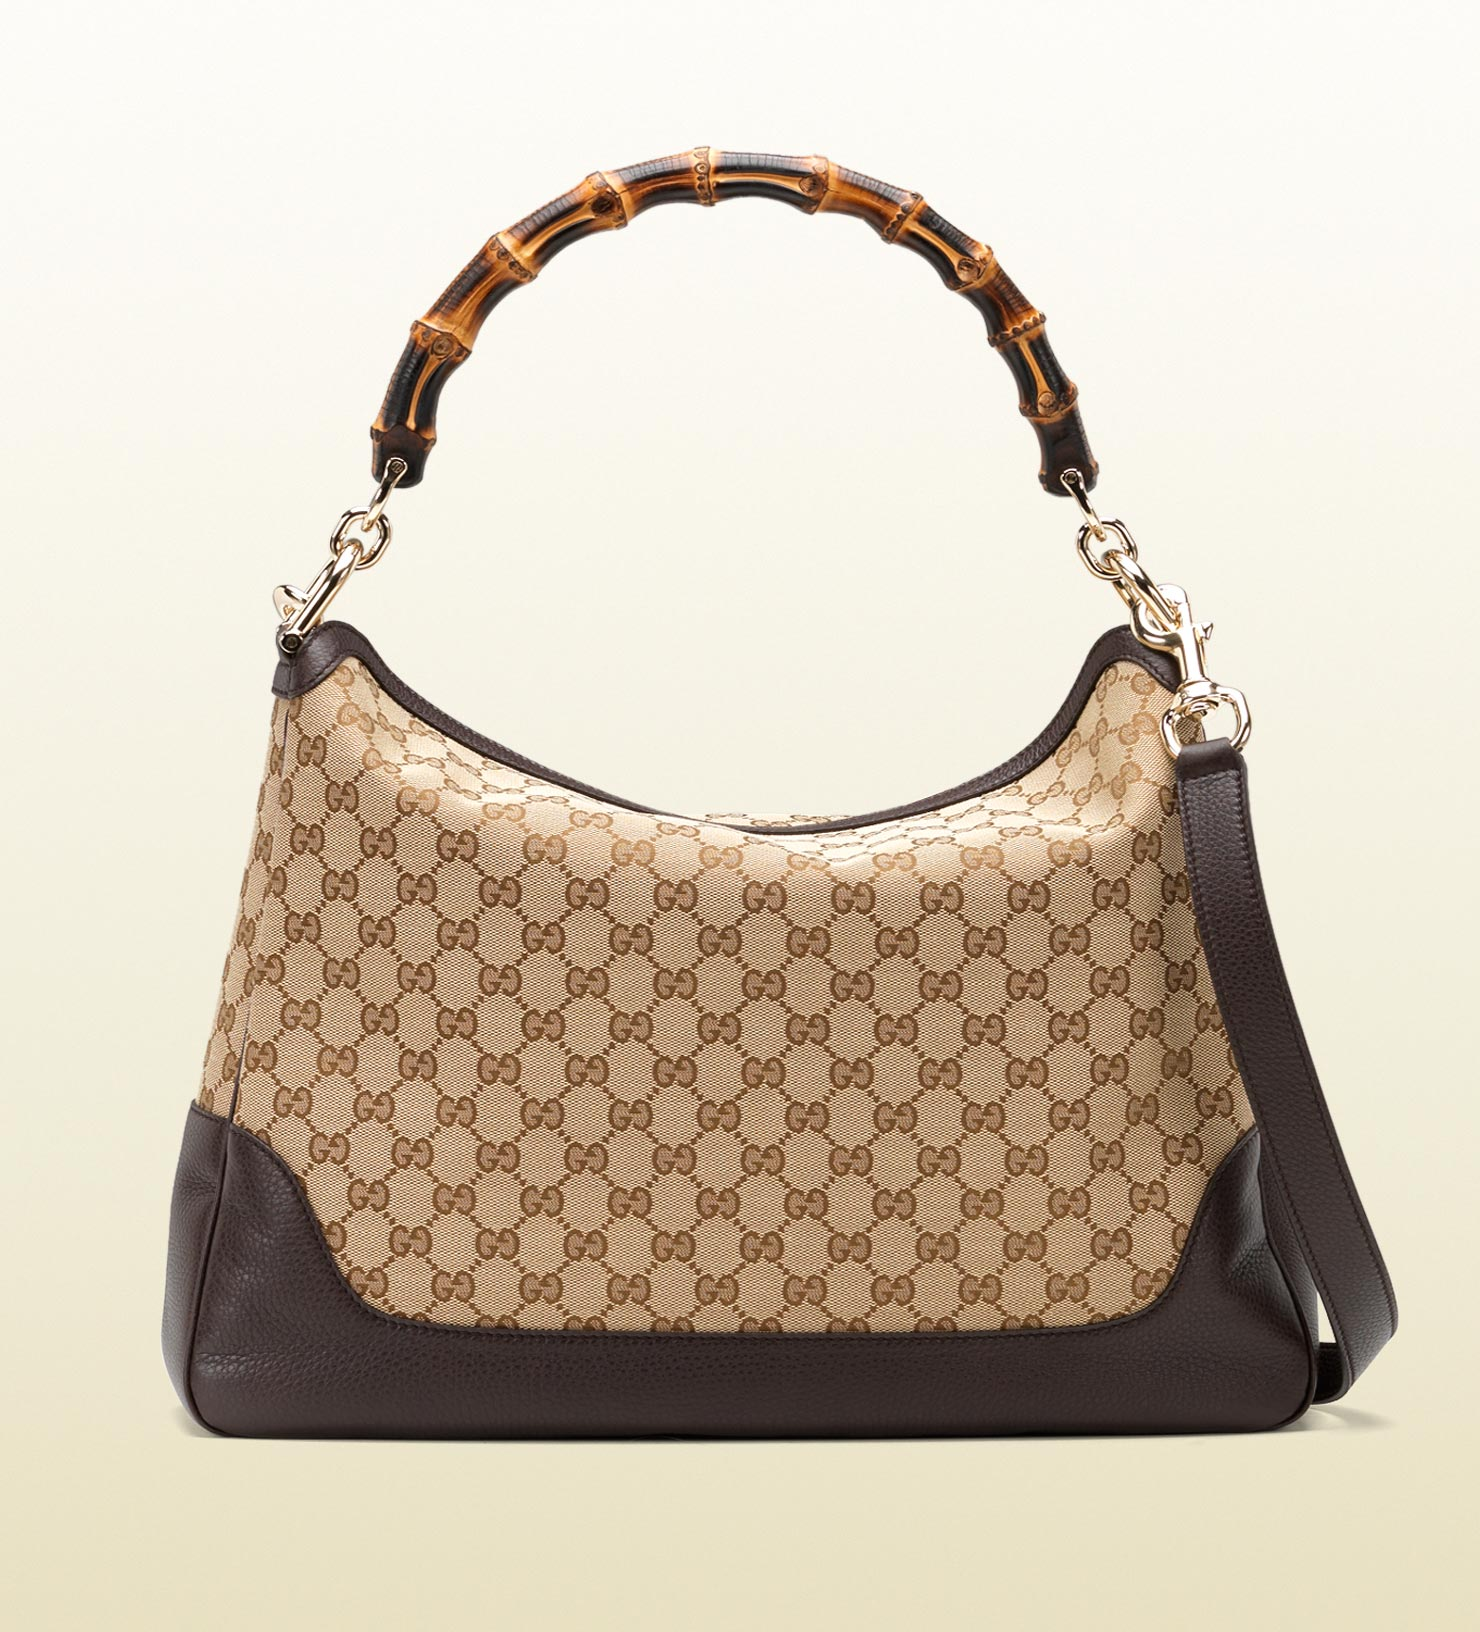 Lyst - Gucci Diana Bamboo Handle Shoulder Bag in Brown